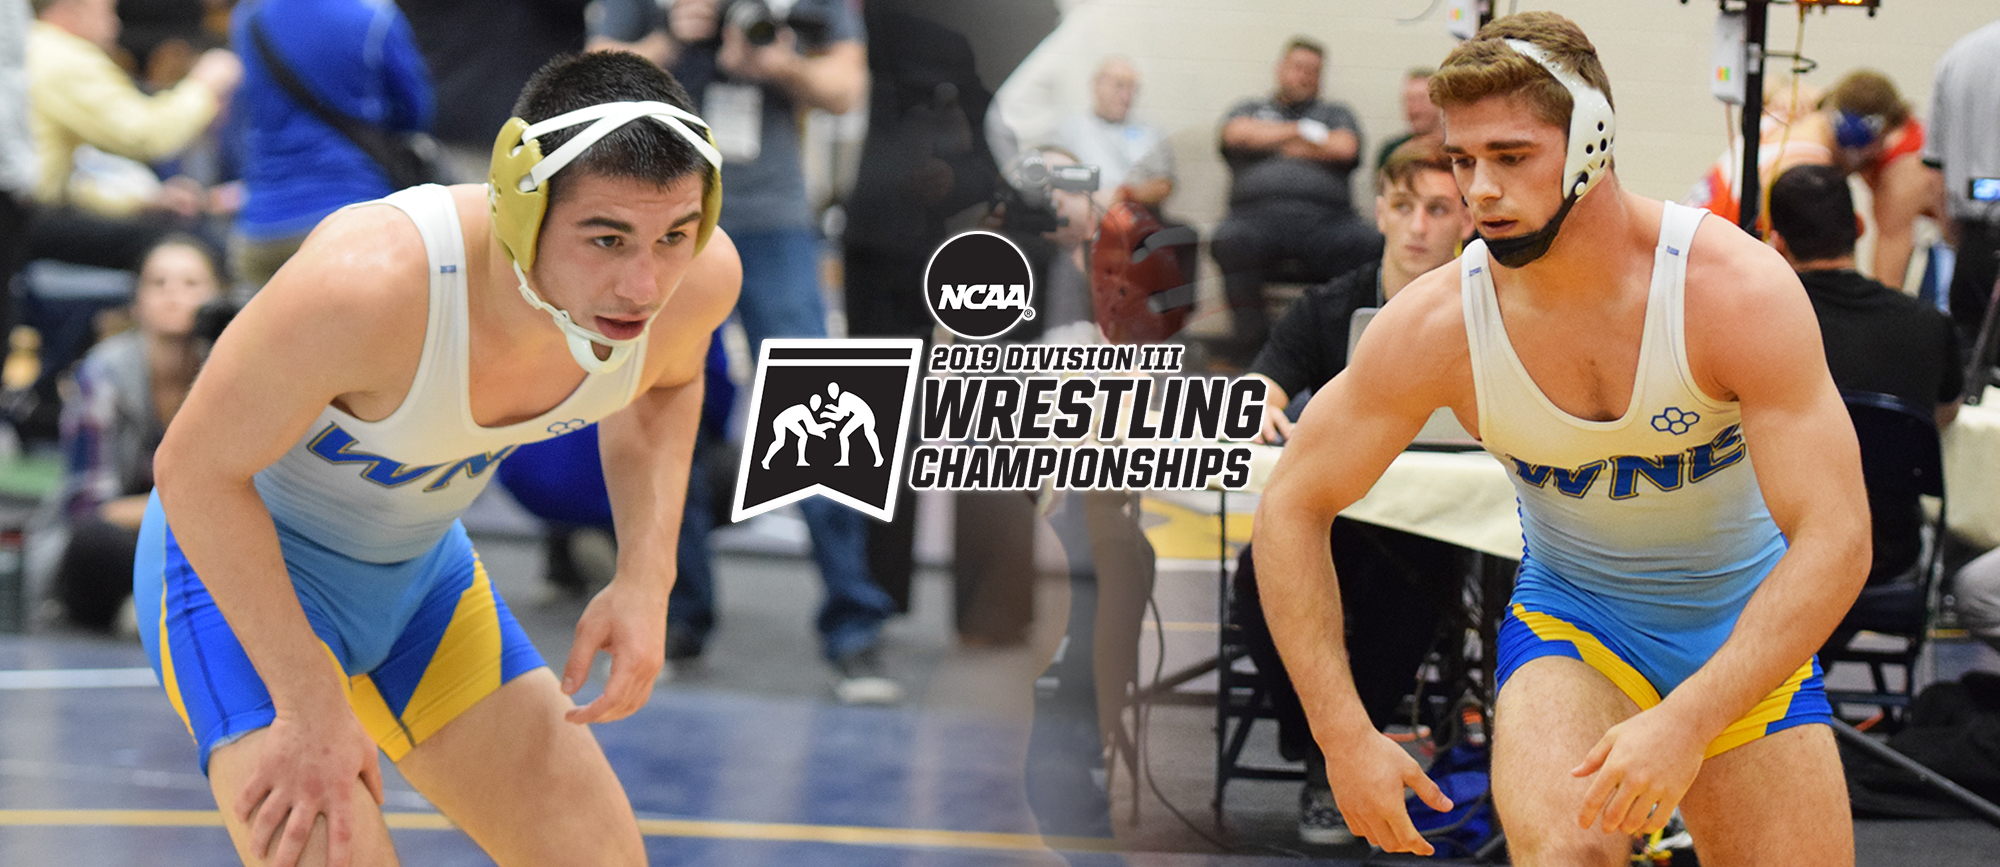 Ryan Monteiro & John Boyle will represent the Golden Bears at the NCAA DIII Championships in two weeks following their second place finishes at the NCAA Northeast Regional.